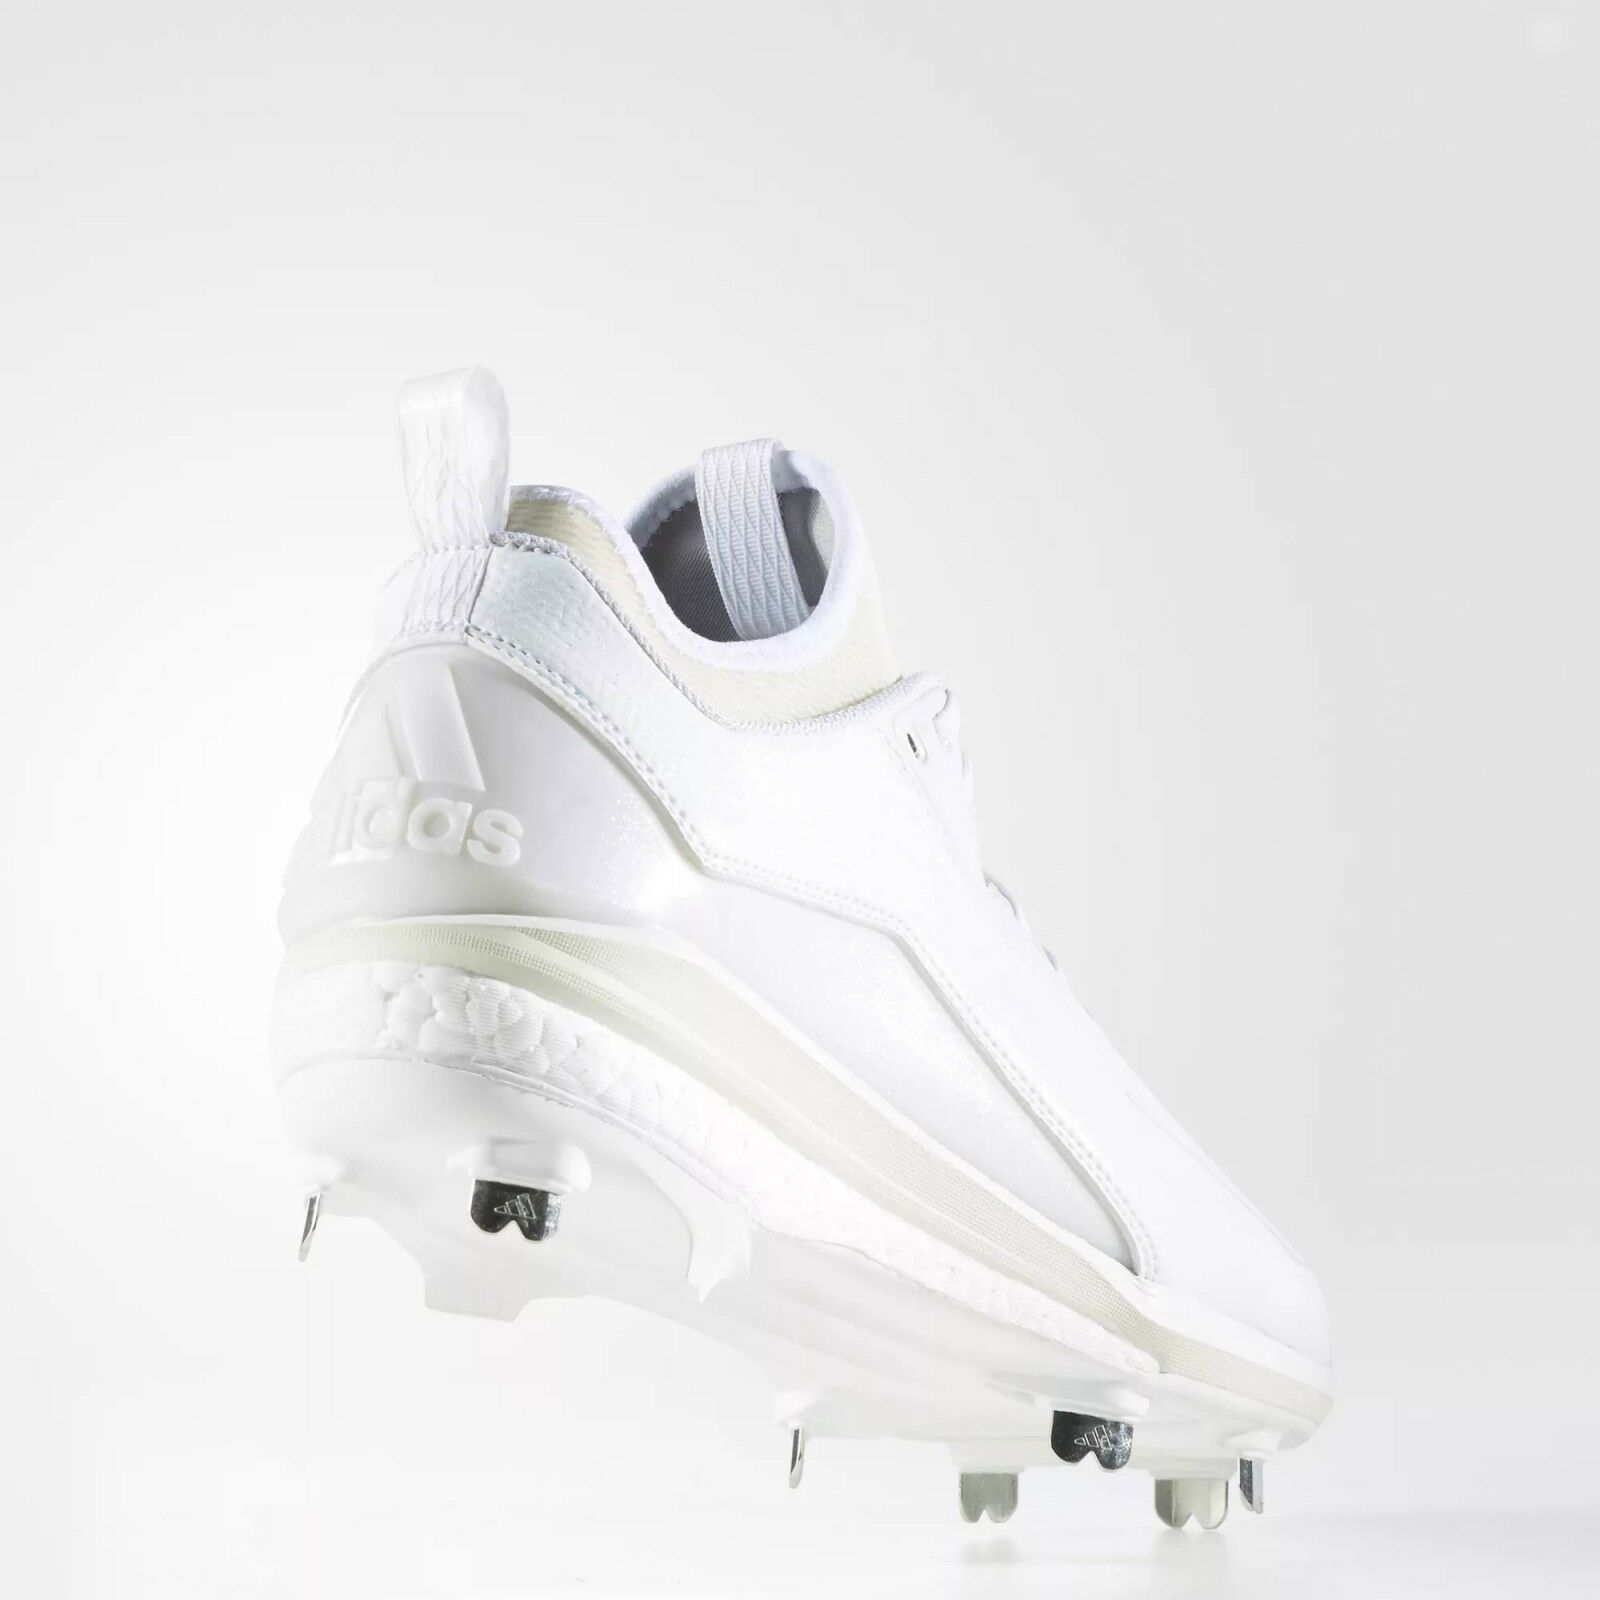 0834461f8 adidas Energy Boost Icon 2 2.0 White Metal Baseball Cleats B27499 8.5 for  sale online